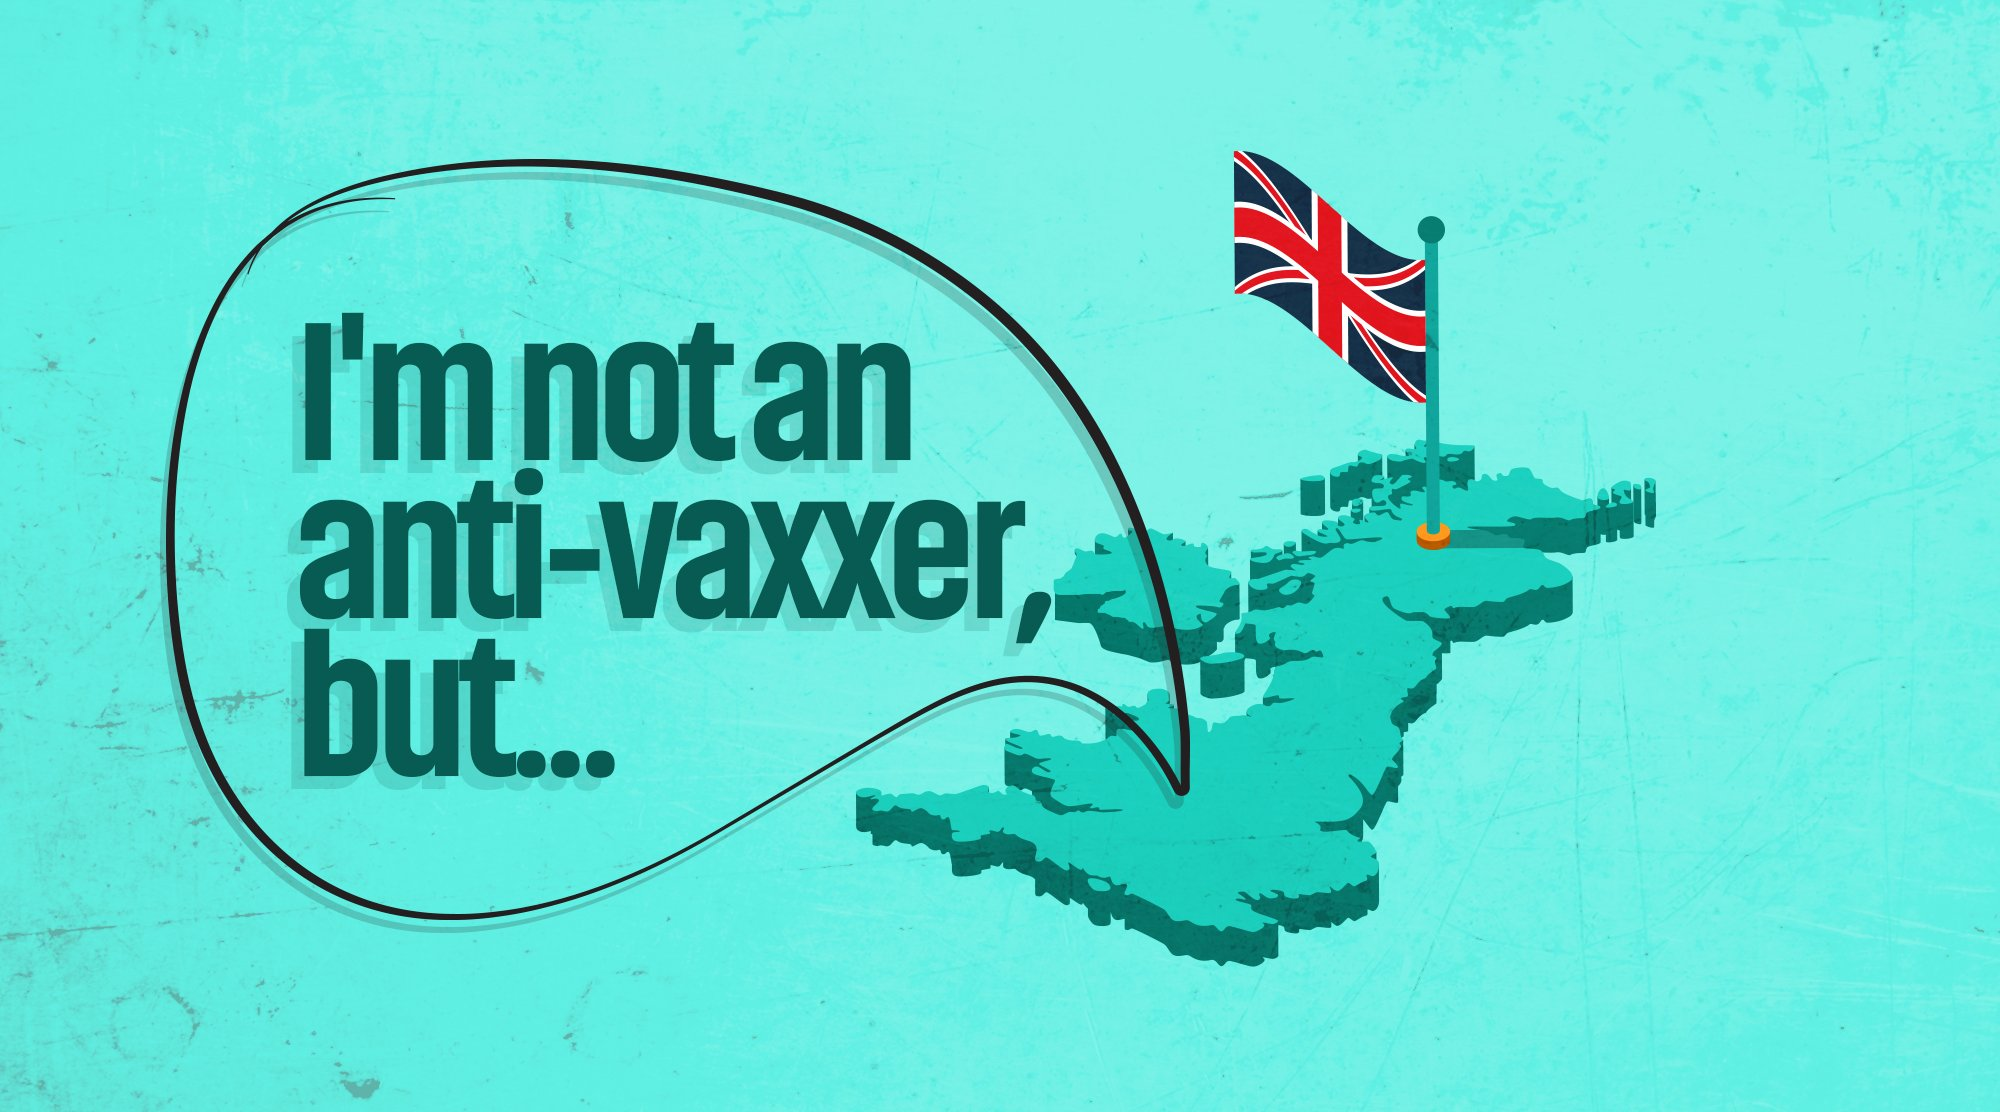 Not Anti-Vaccine, Anti COVID-Vaccine: Misinformation Trends in the UK